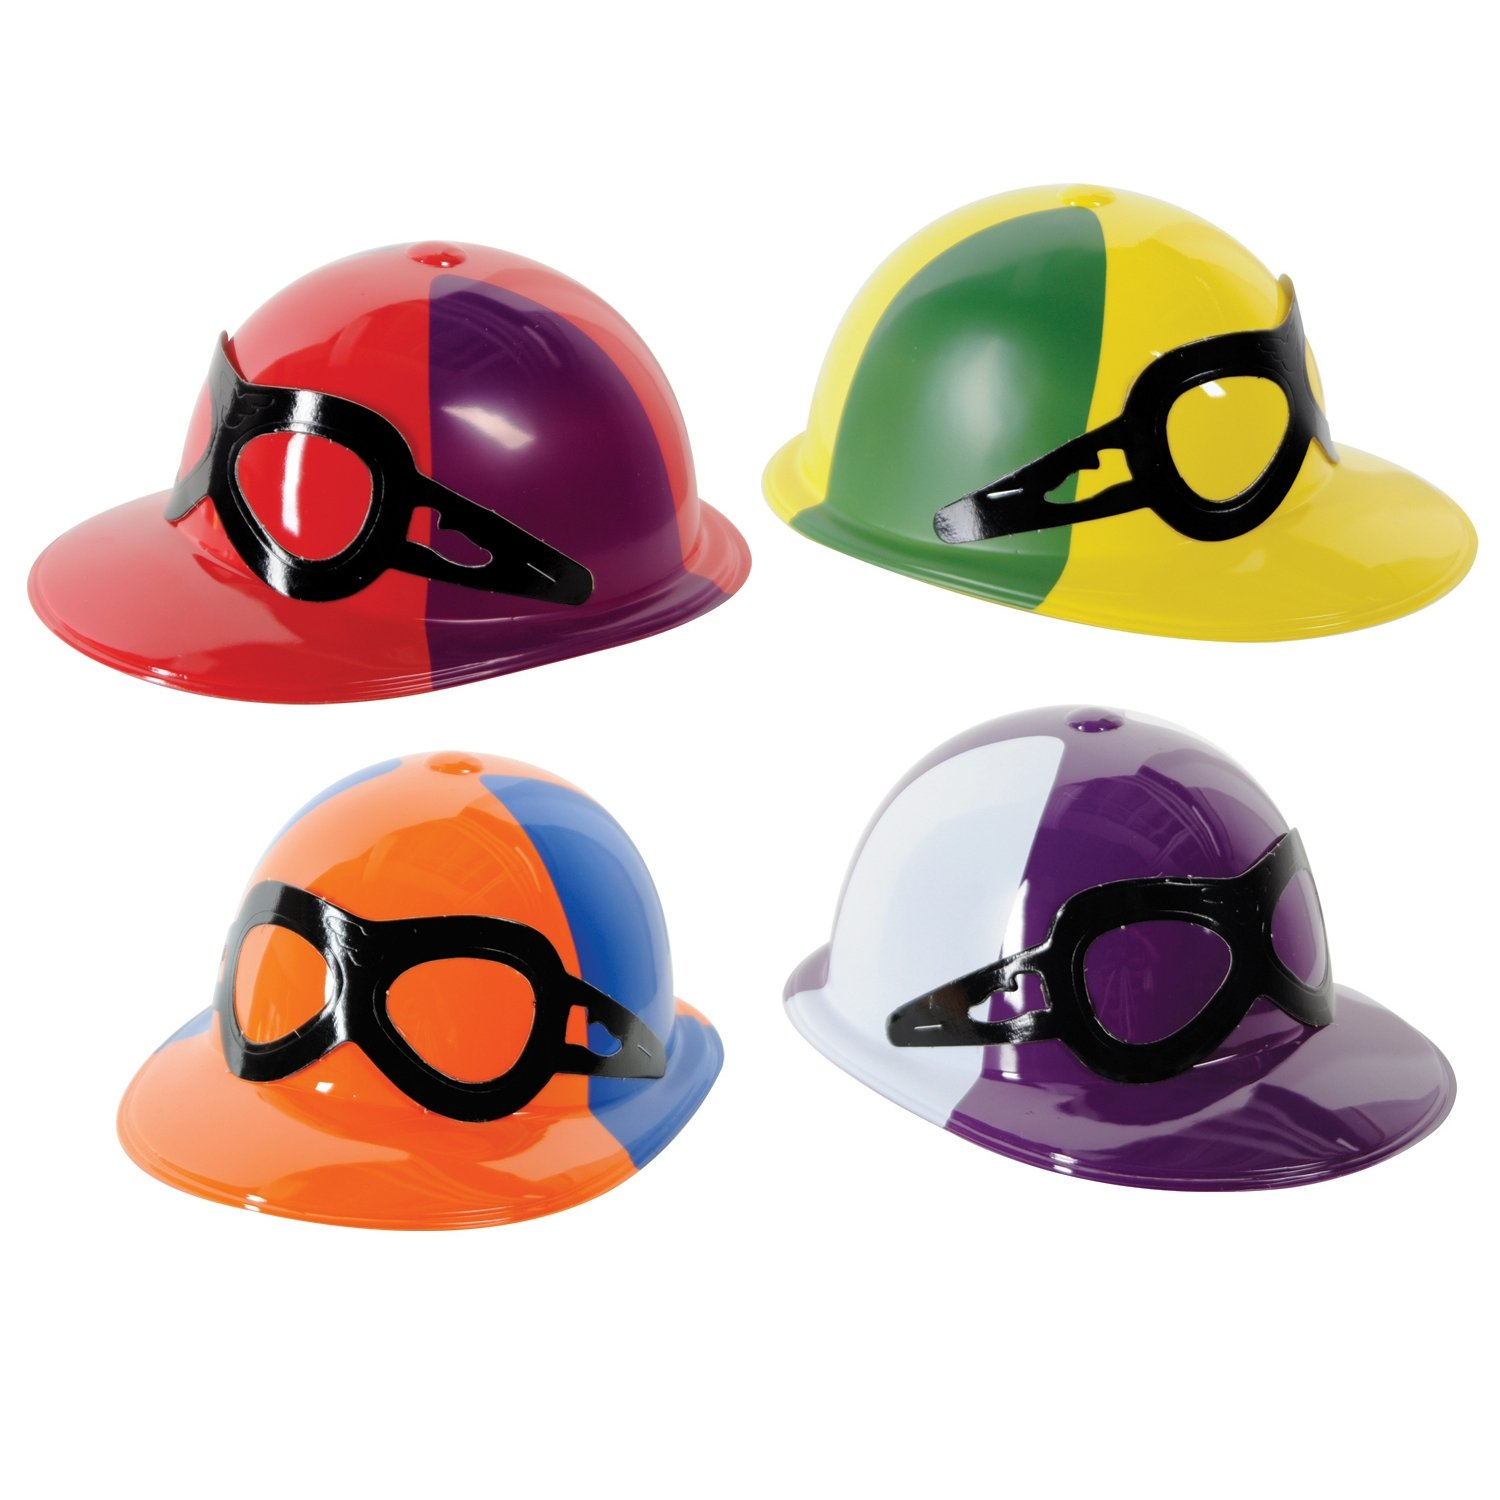 Beistle 66787 48-Pack Plastic Jockey Helmets by Beistle